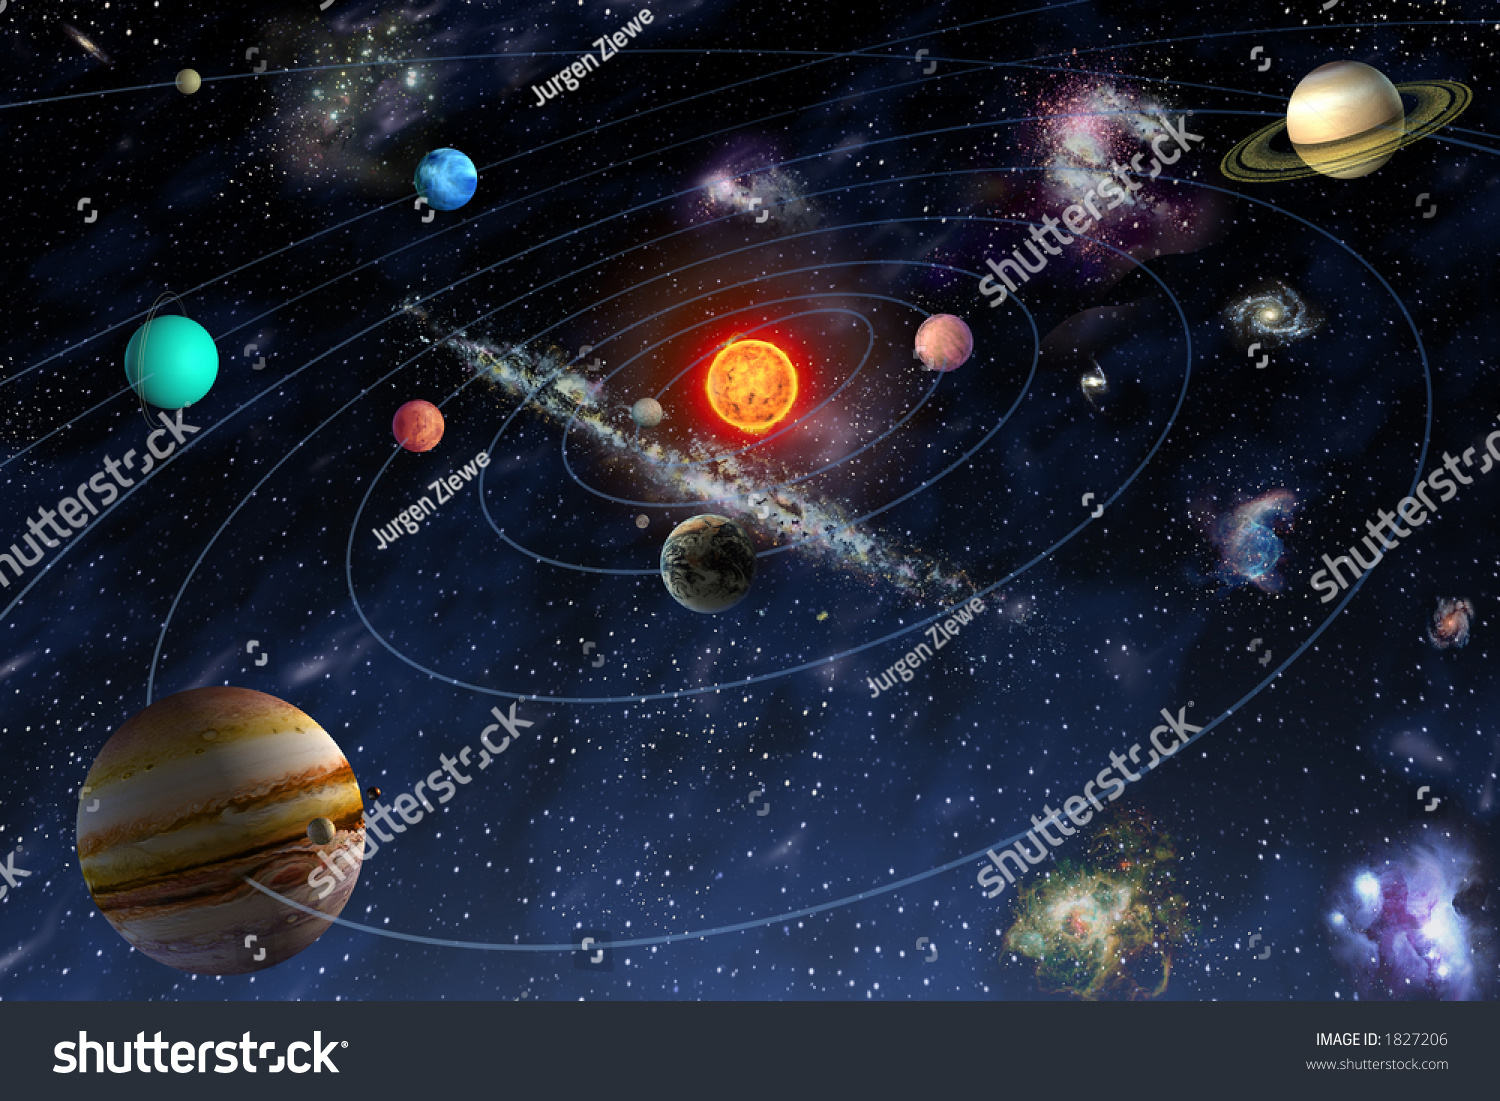 Diagram Of The Planets In The Solar System Stock Photo ...